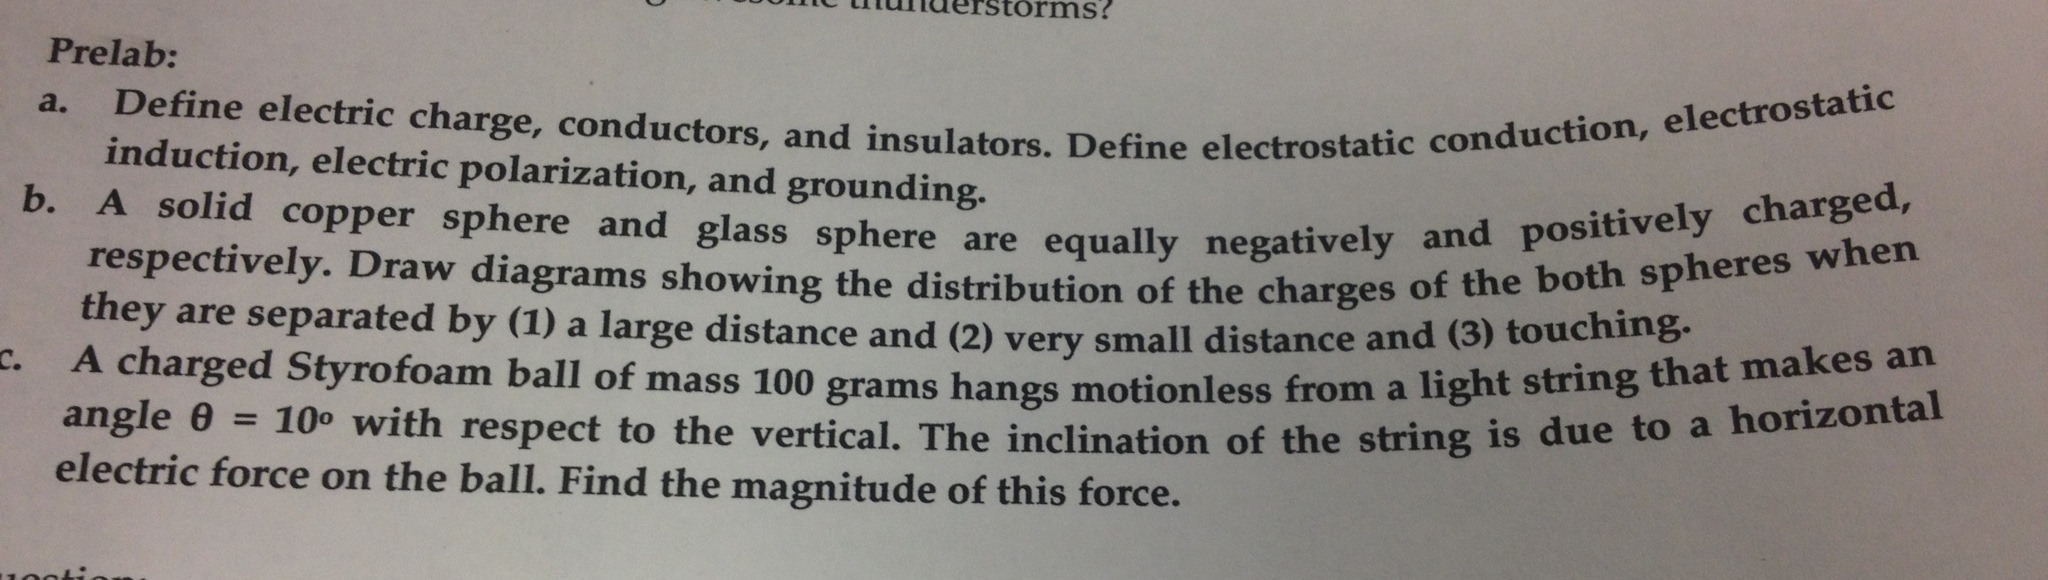 Define electric charge, conductors, and insulators